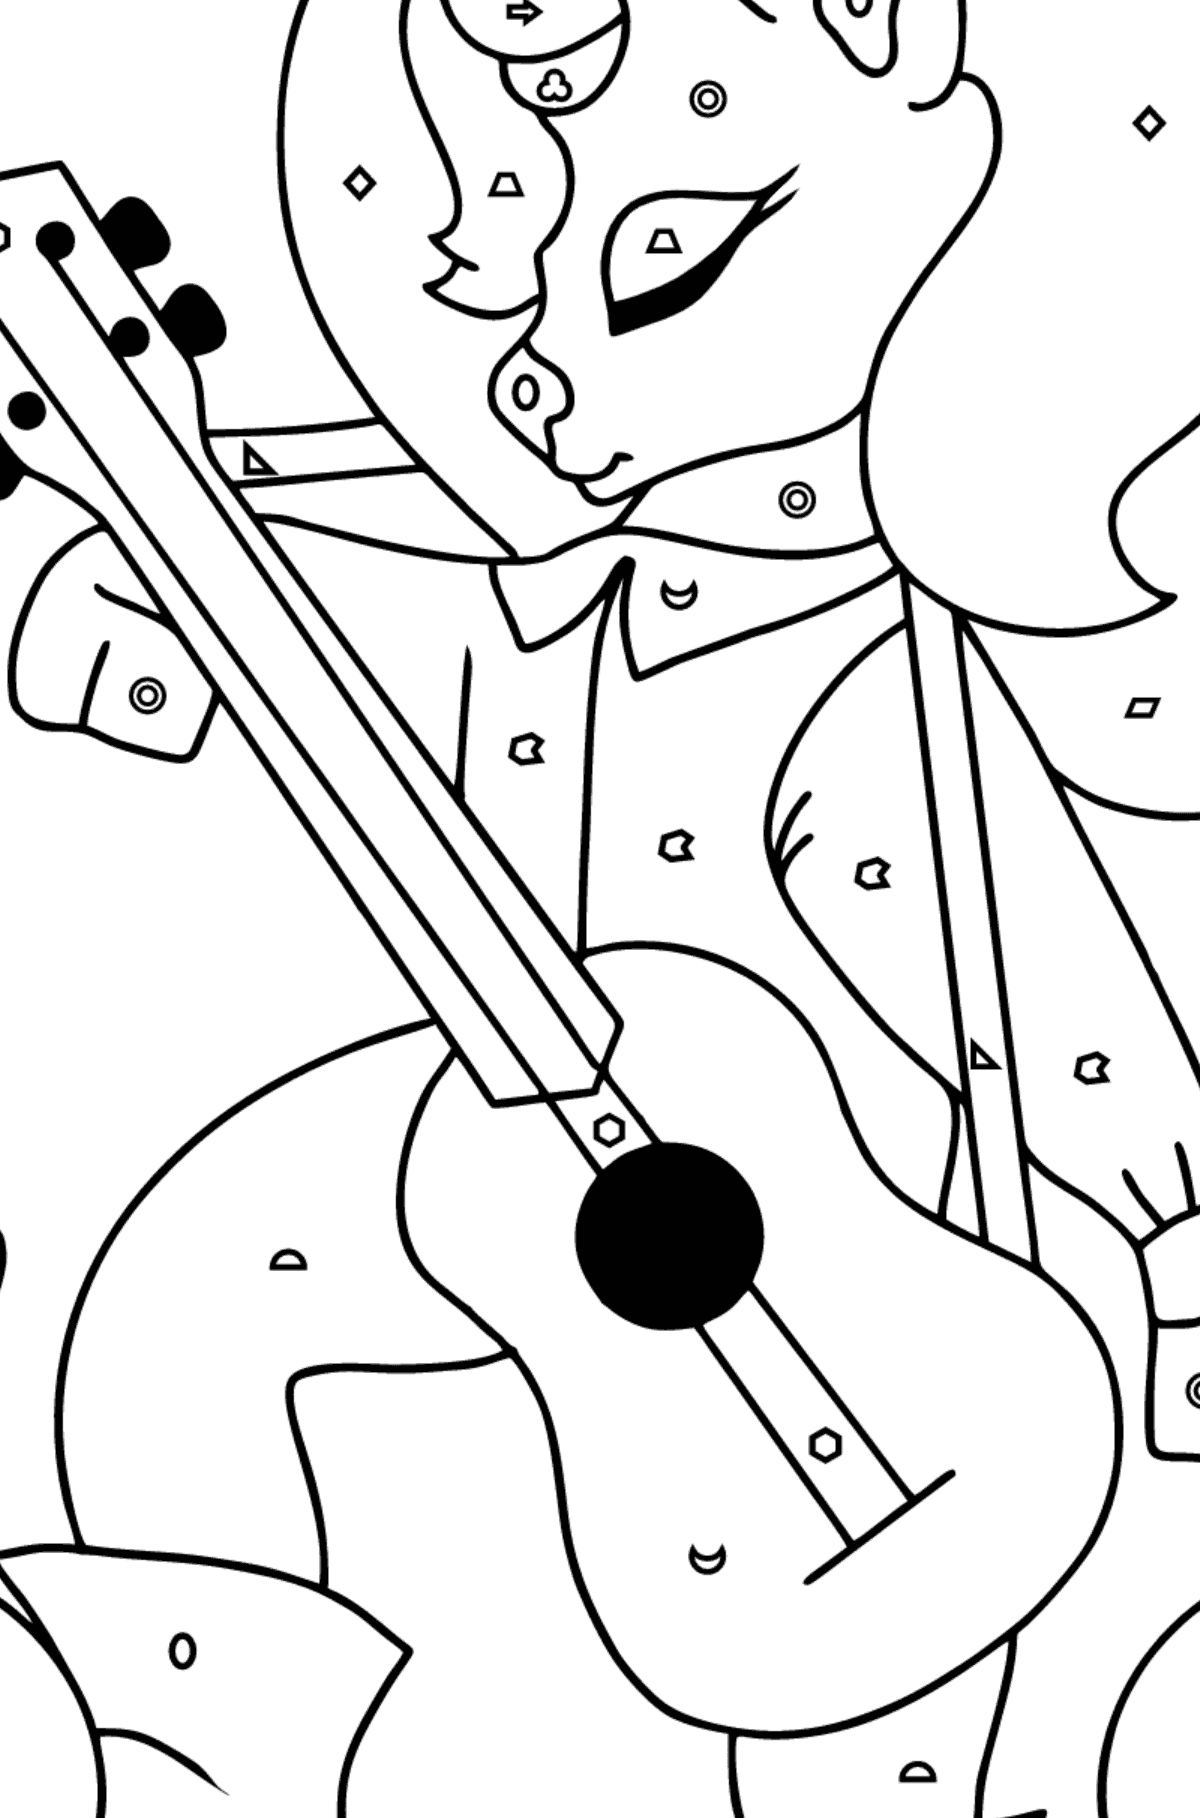 Complex Coloring Page - A Unicorn with a Guitar for Kids  - Color by Geometric Shapes